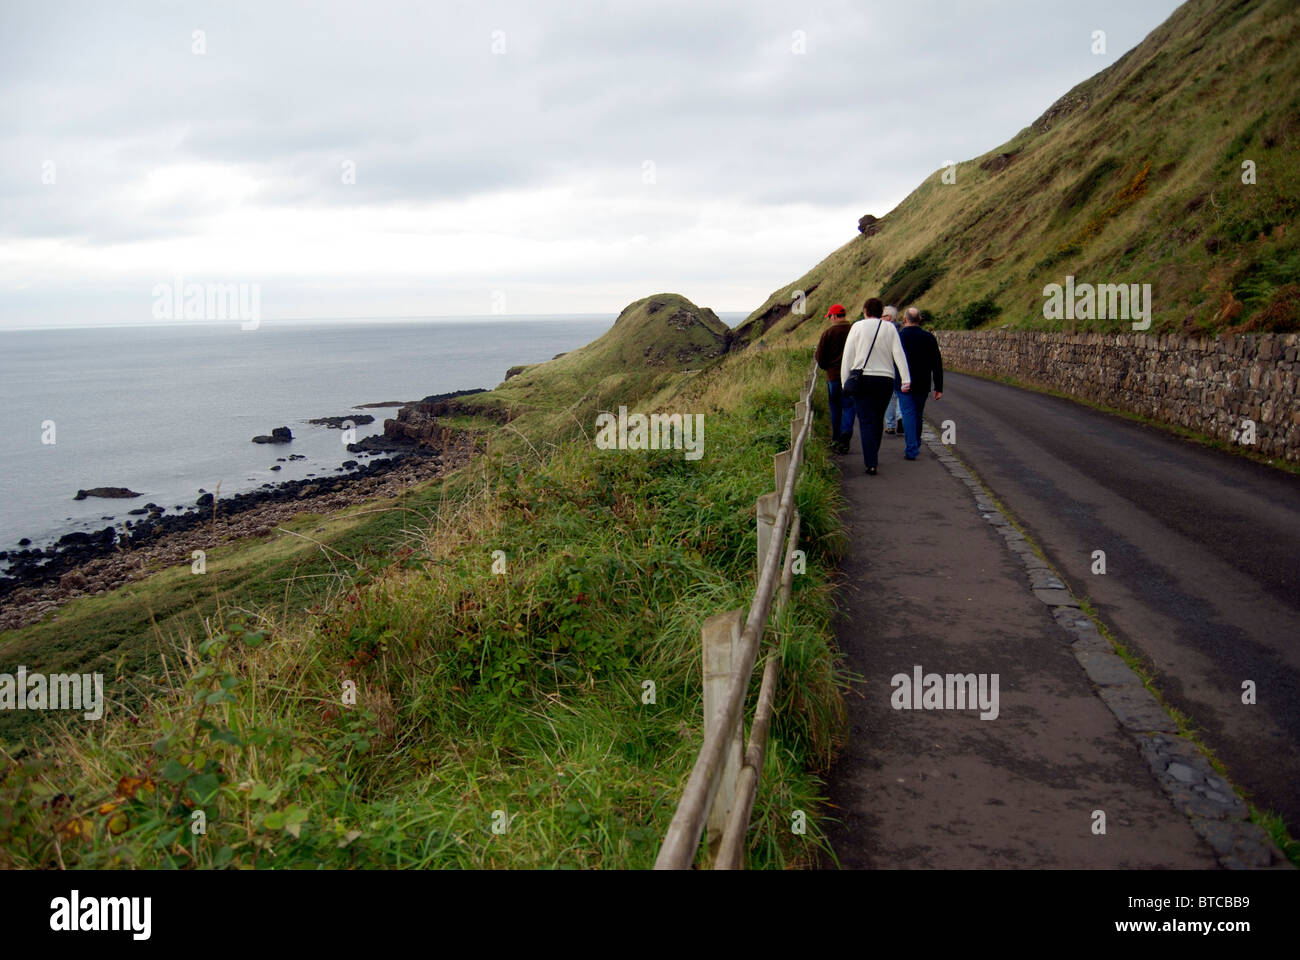 Walkers on road near the Giants Causeway, County Antrim, Northern Ireland - Stock Image